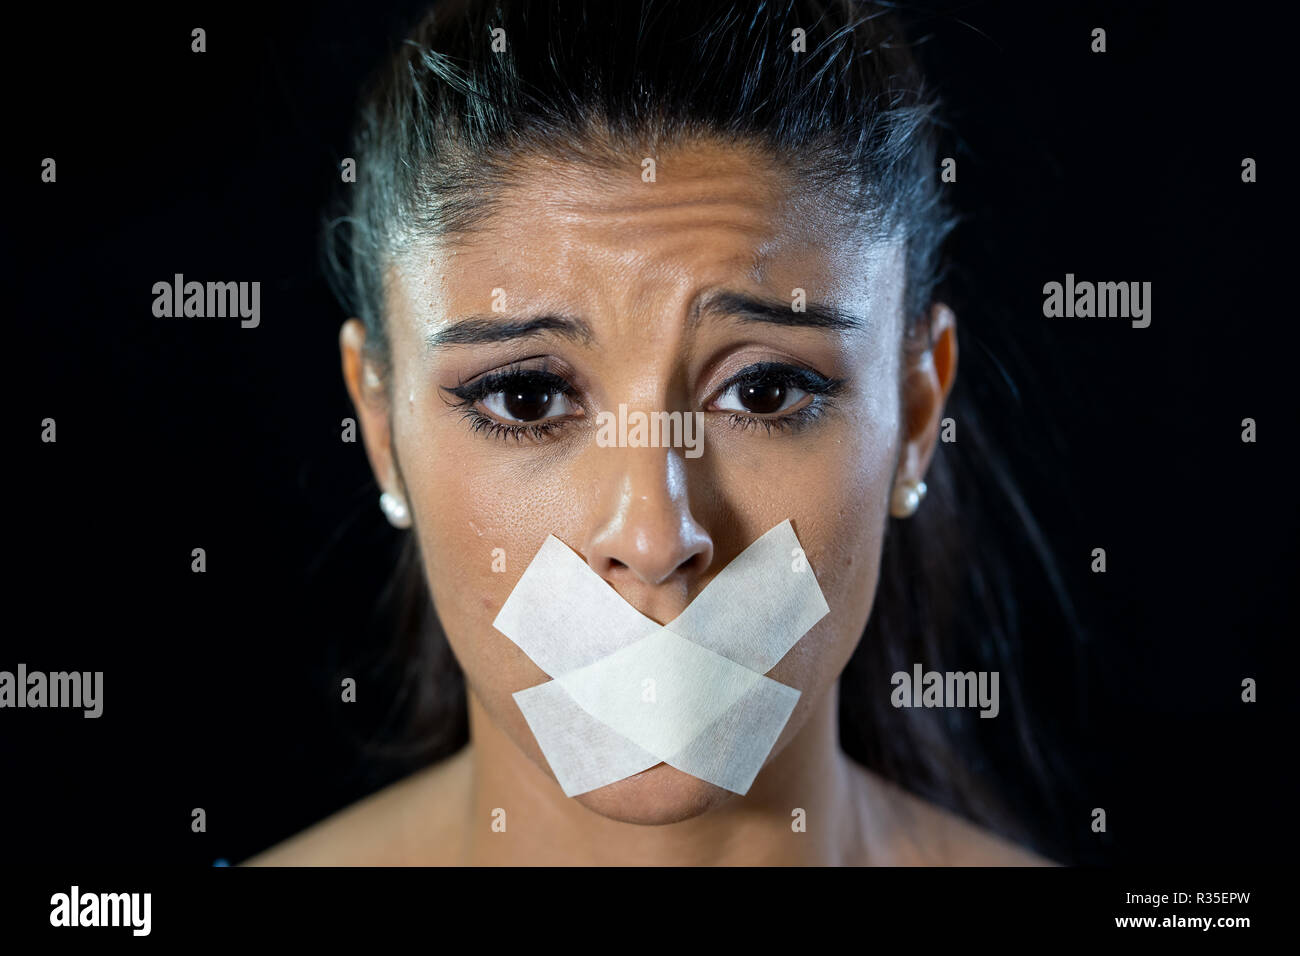 Attractive scared woman with taped mouth making in Silence Abuse Censorship Me too and Freedom of speech Concept Isolated on black background. - Stock Image